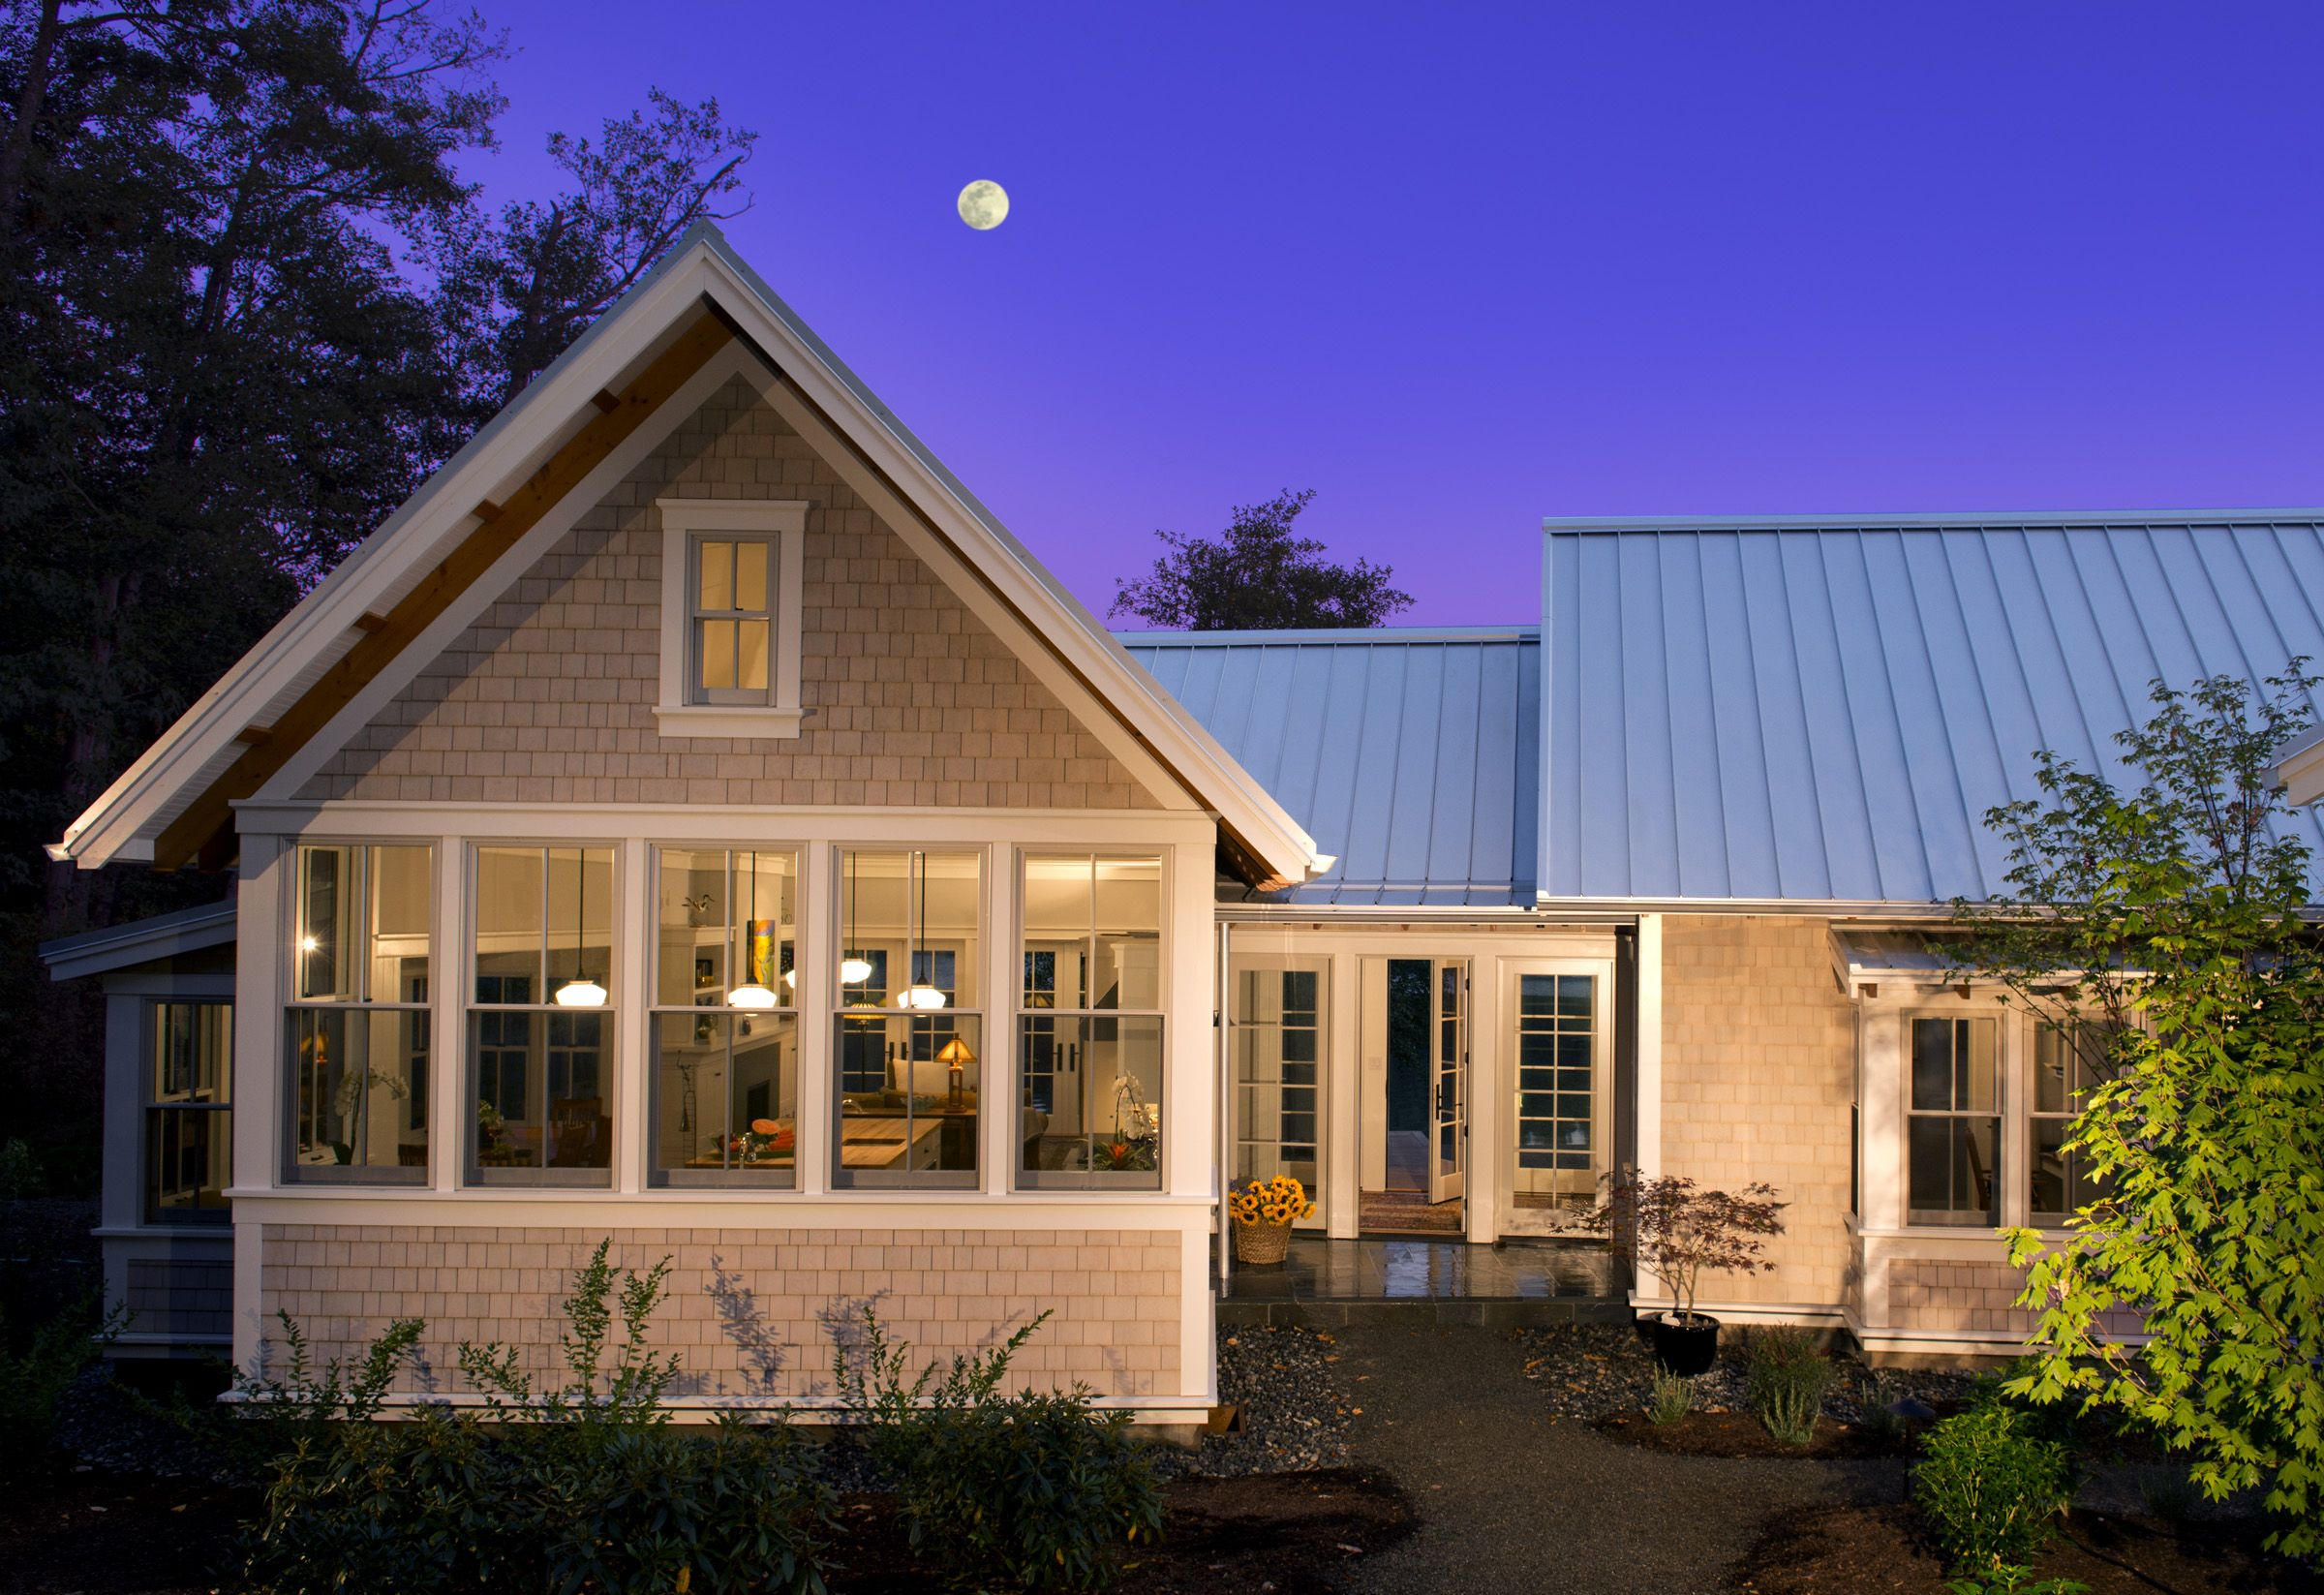 The Maple Is A Unique Home Floor Plan That Divides Daytime And Nighttime Spaces With Cottage Style House Plans Beach Style House Plans Modern Style House Plans